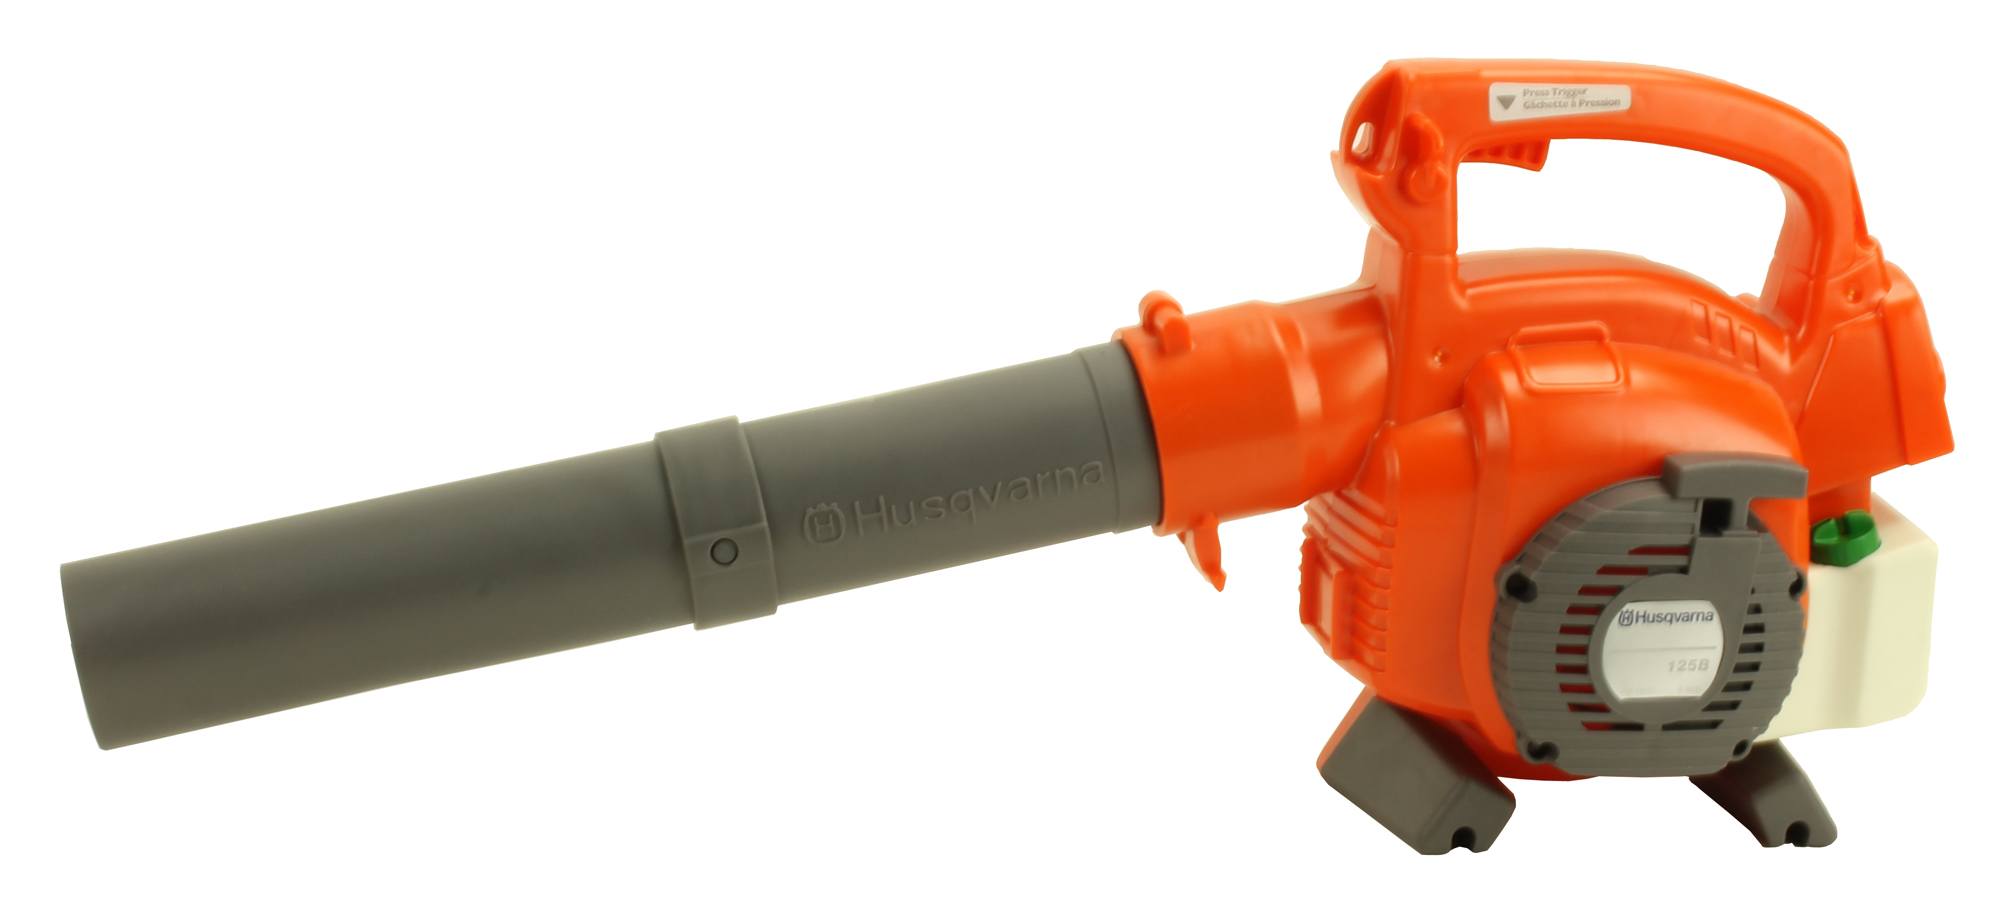 Husqvarna 585729101 125B Toy Kids Battery Operated Leaf Blower